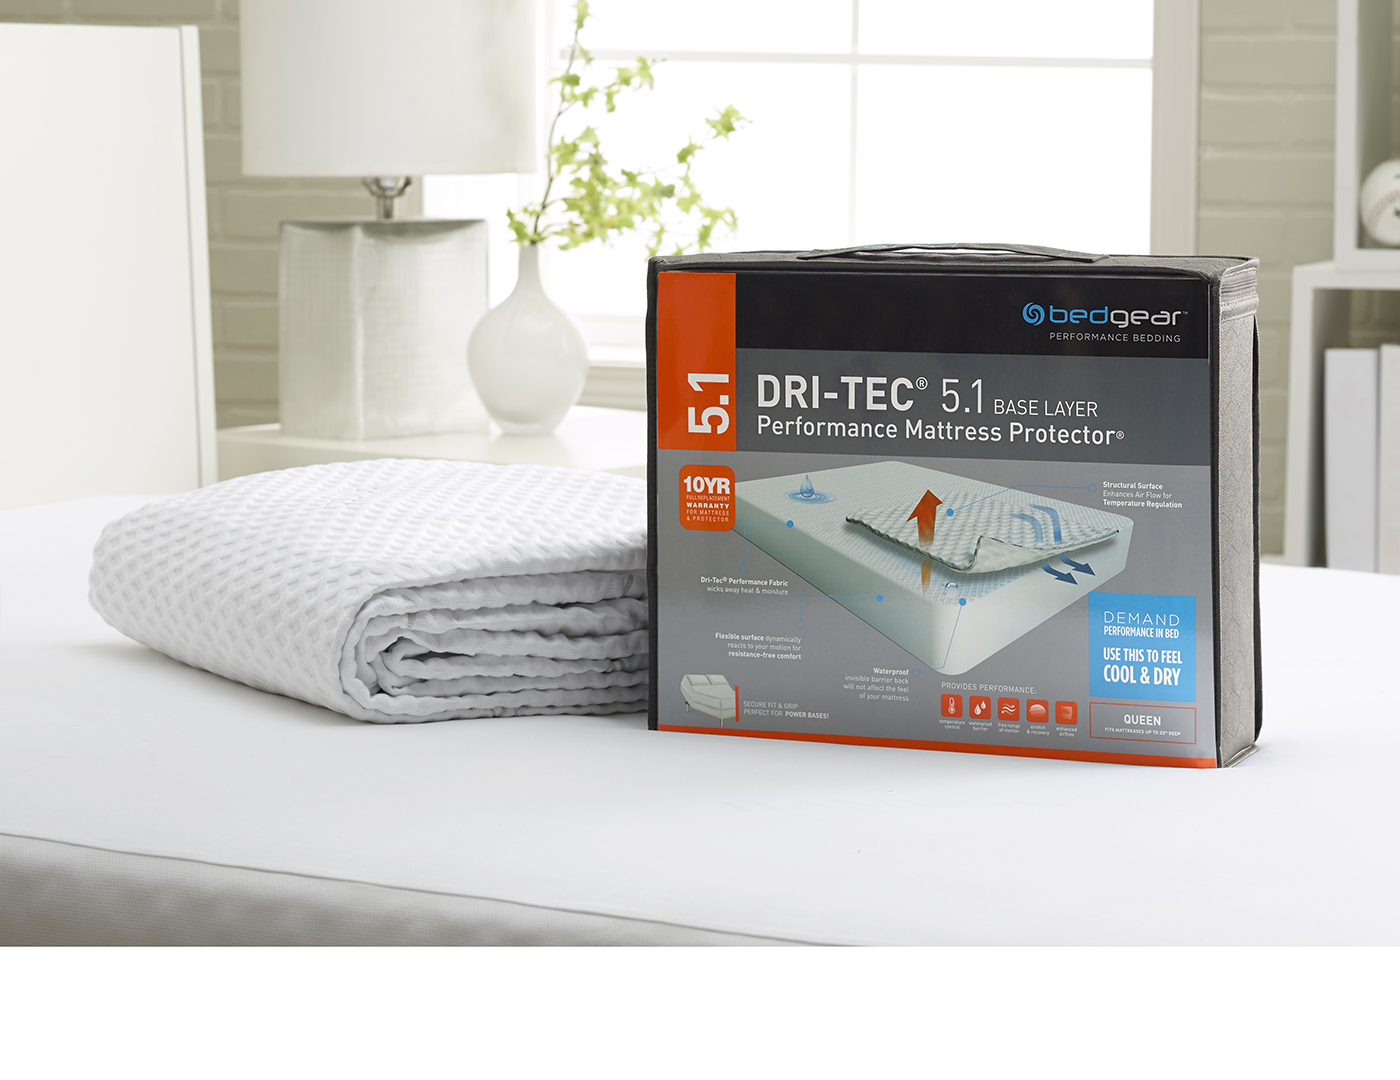 bedgear 5.1 Dri-Tec Moisture Wicking King Mattress Protector